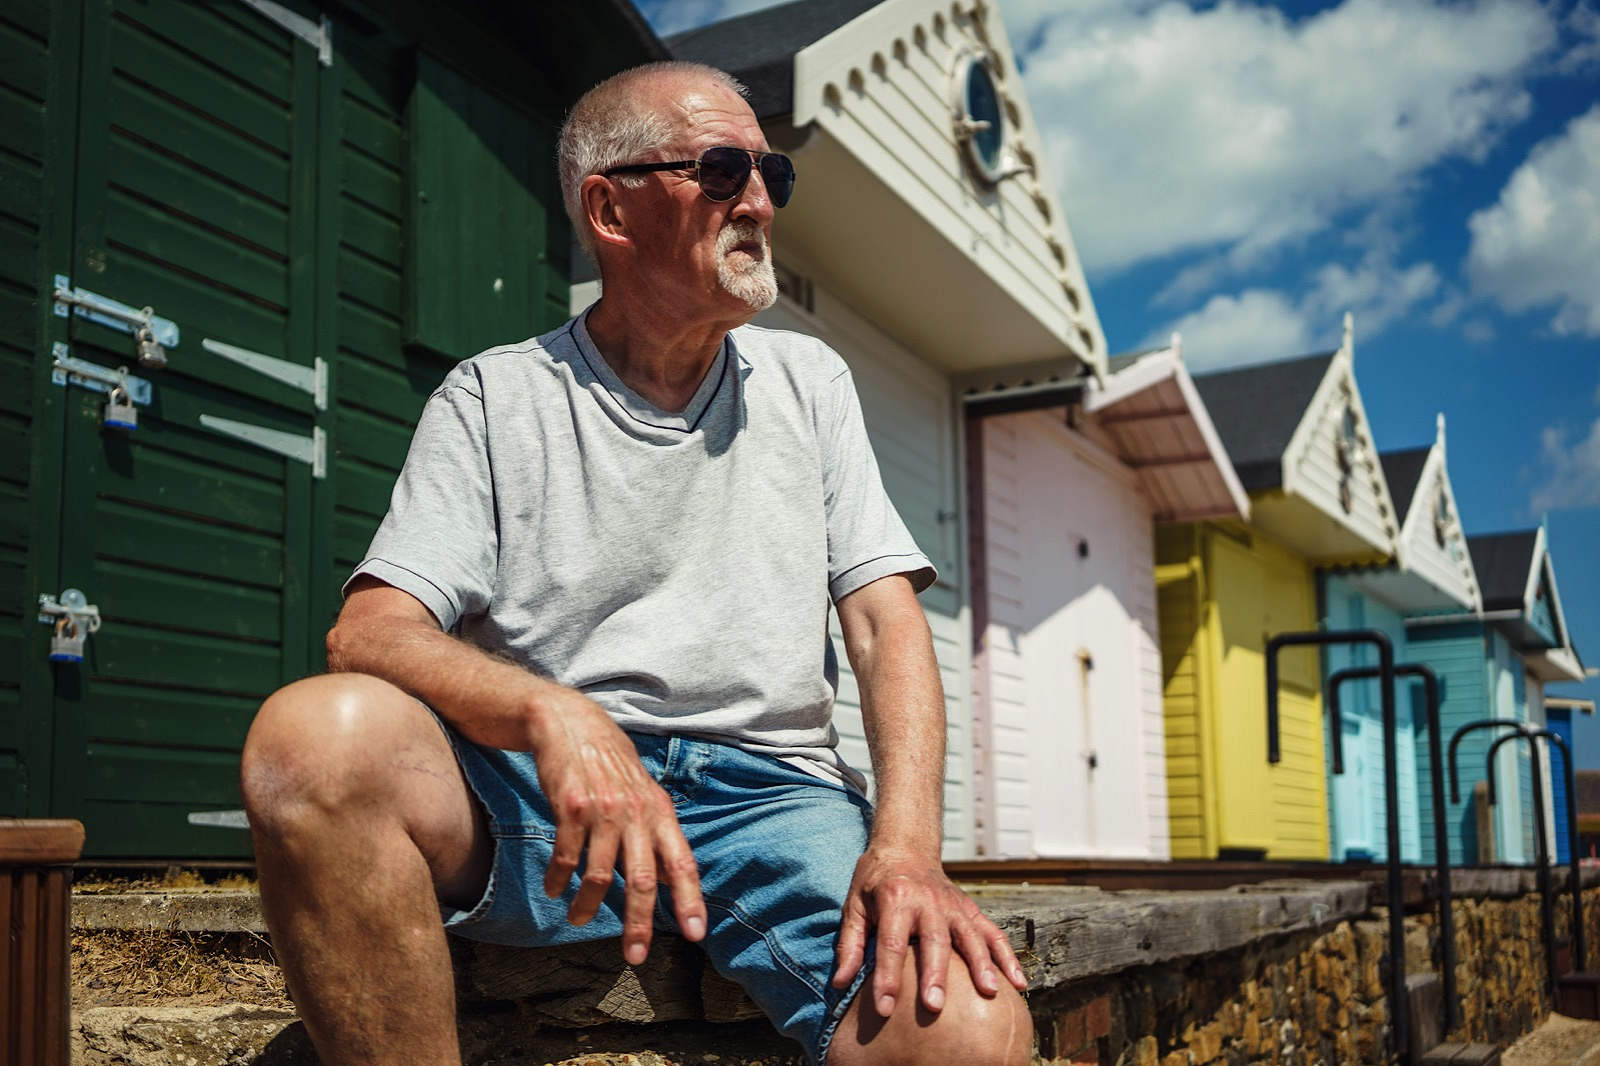 Portrait of a elderly man sitting by a row of beach huts in Essex